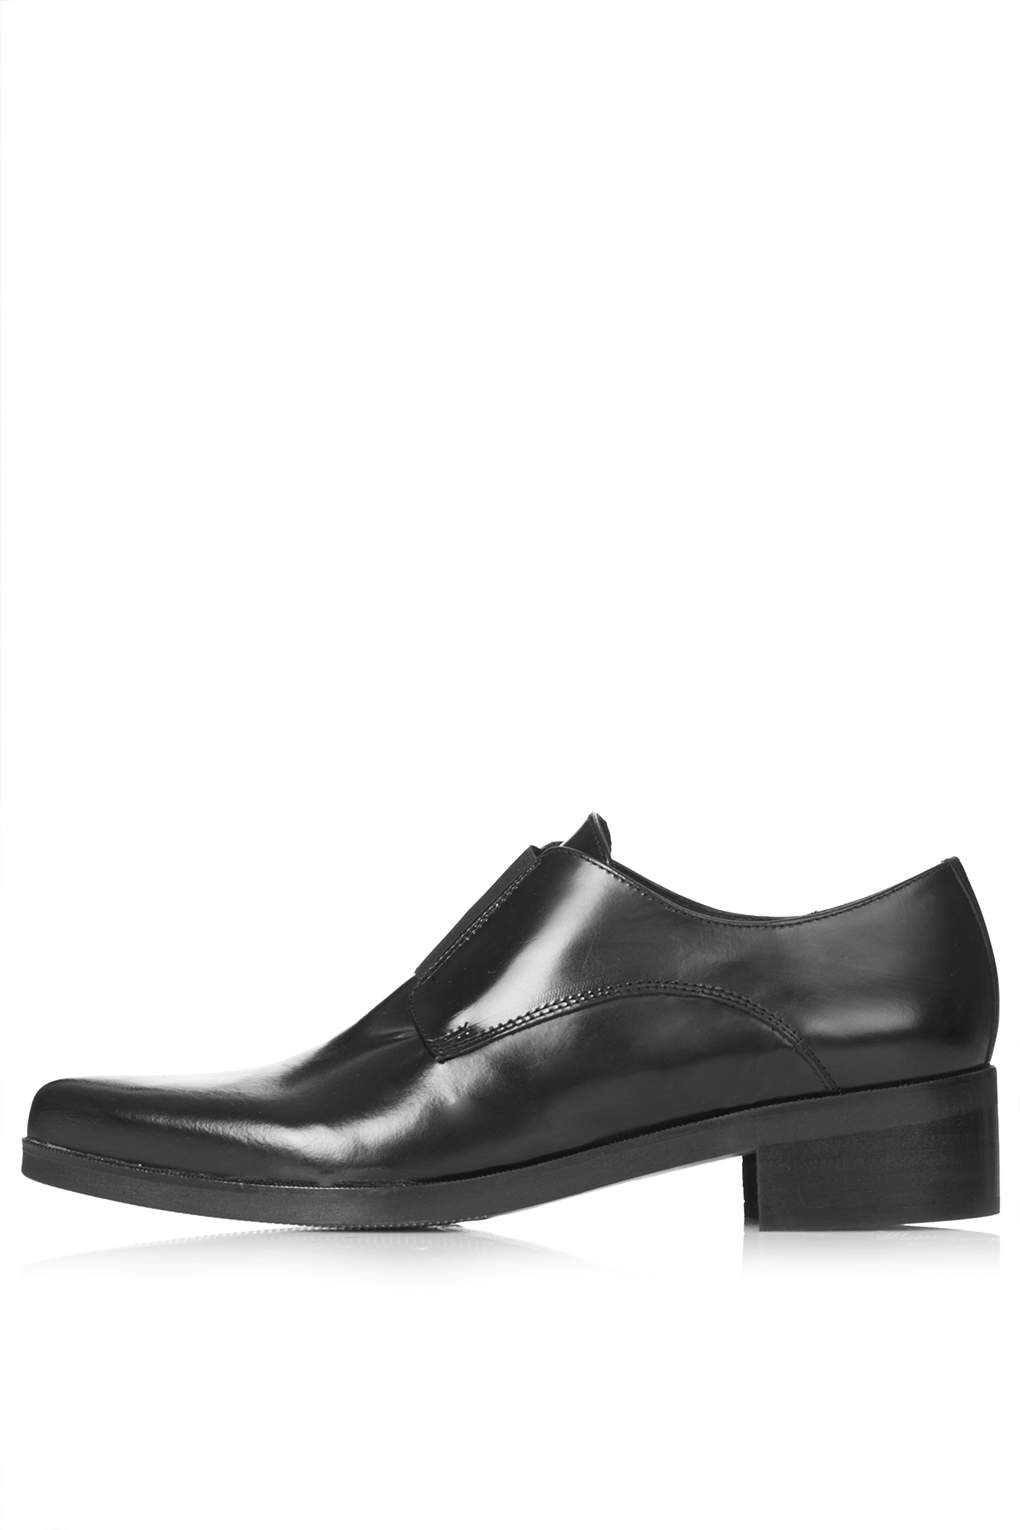 KALE Elastic Leather Loafers